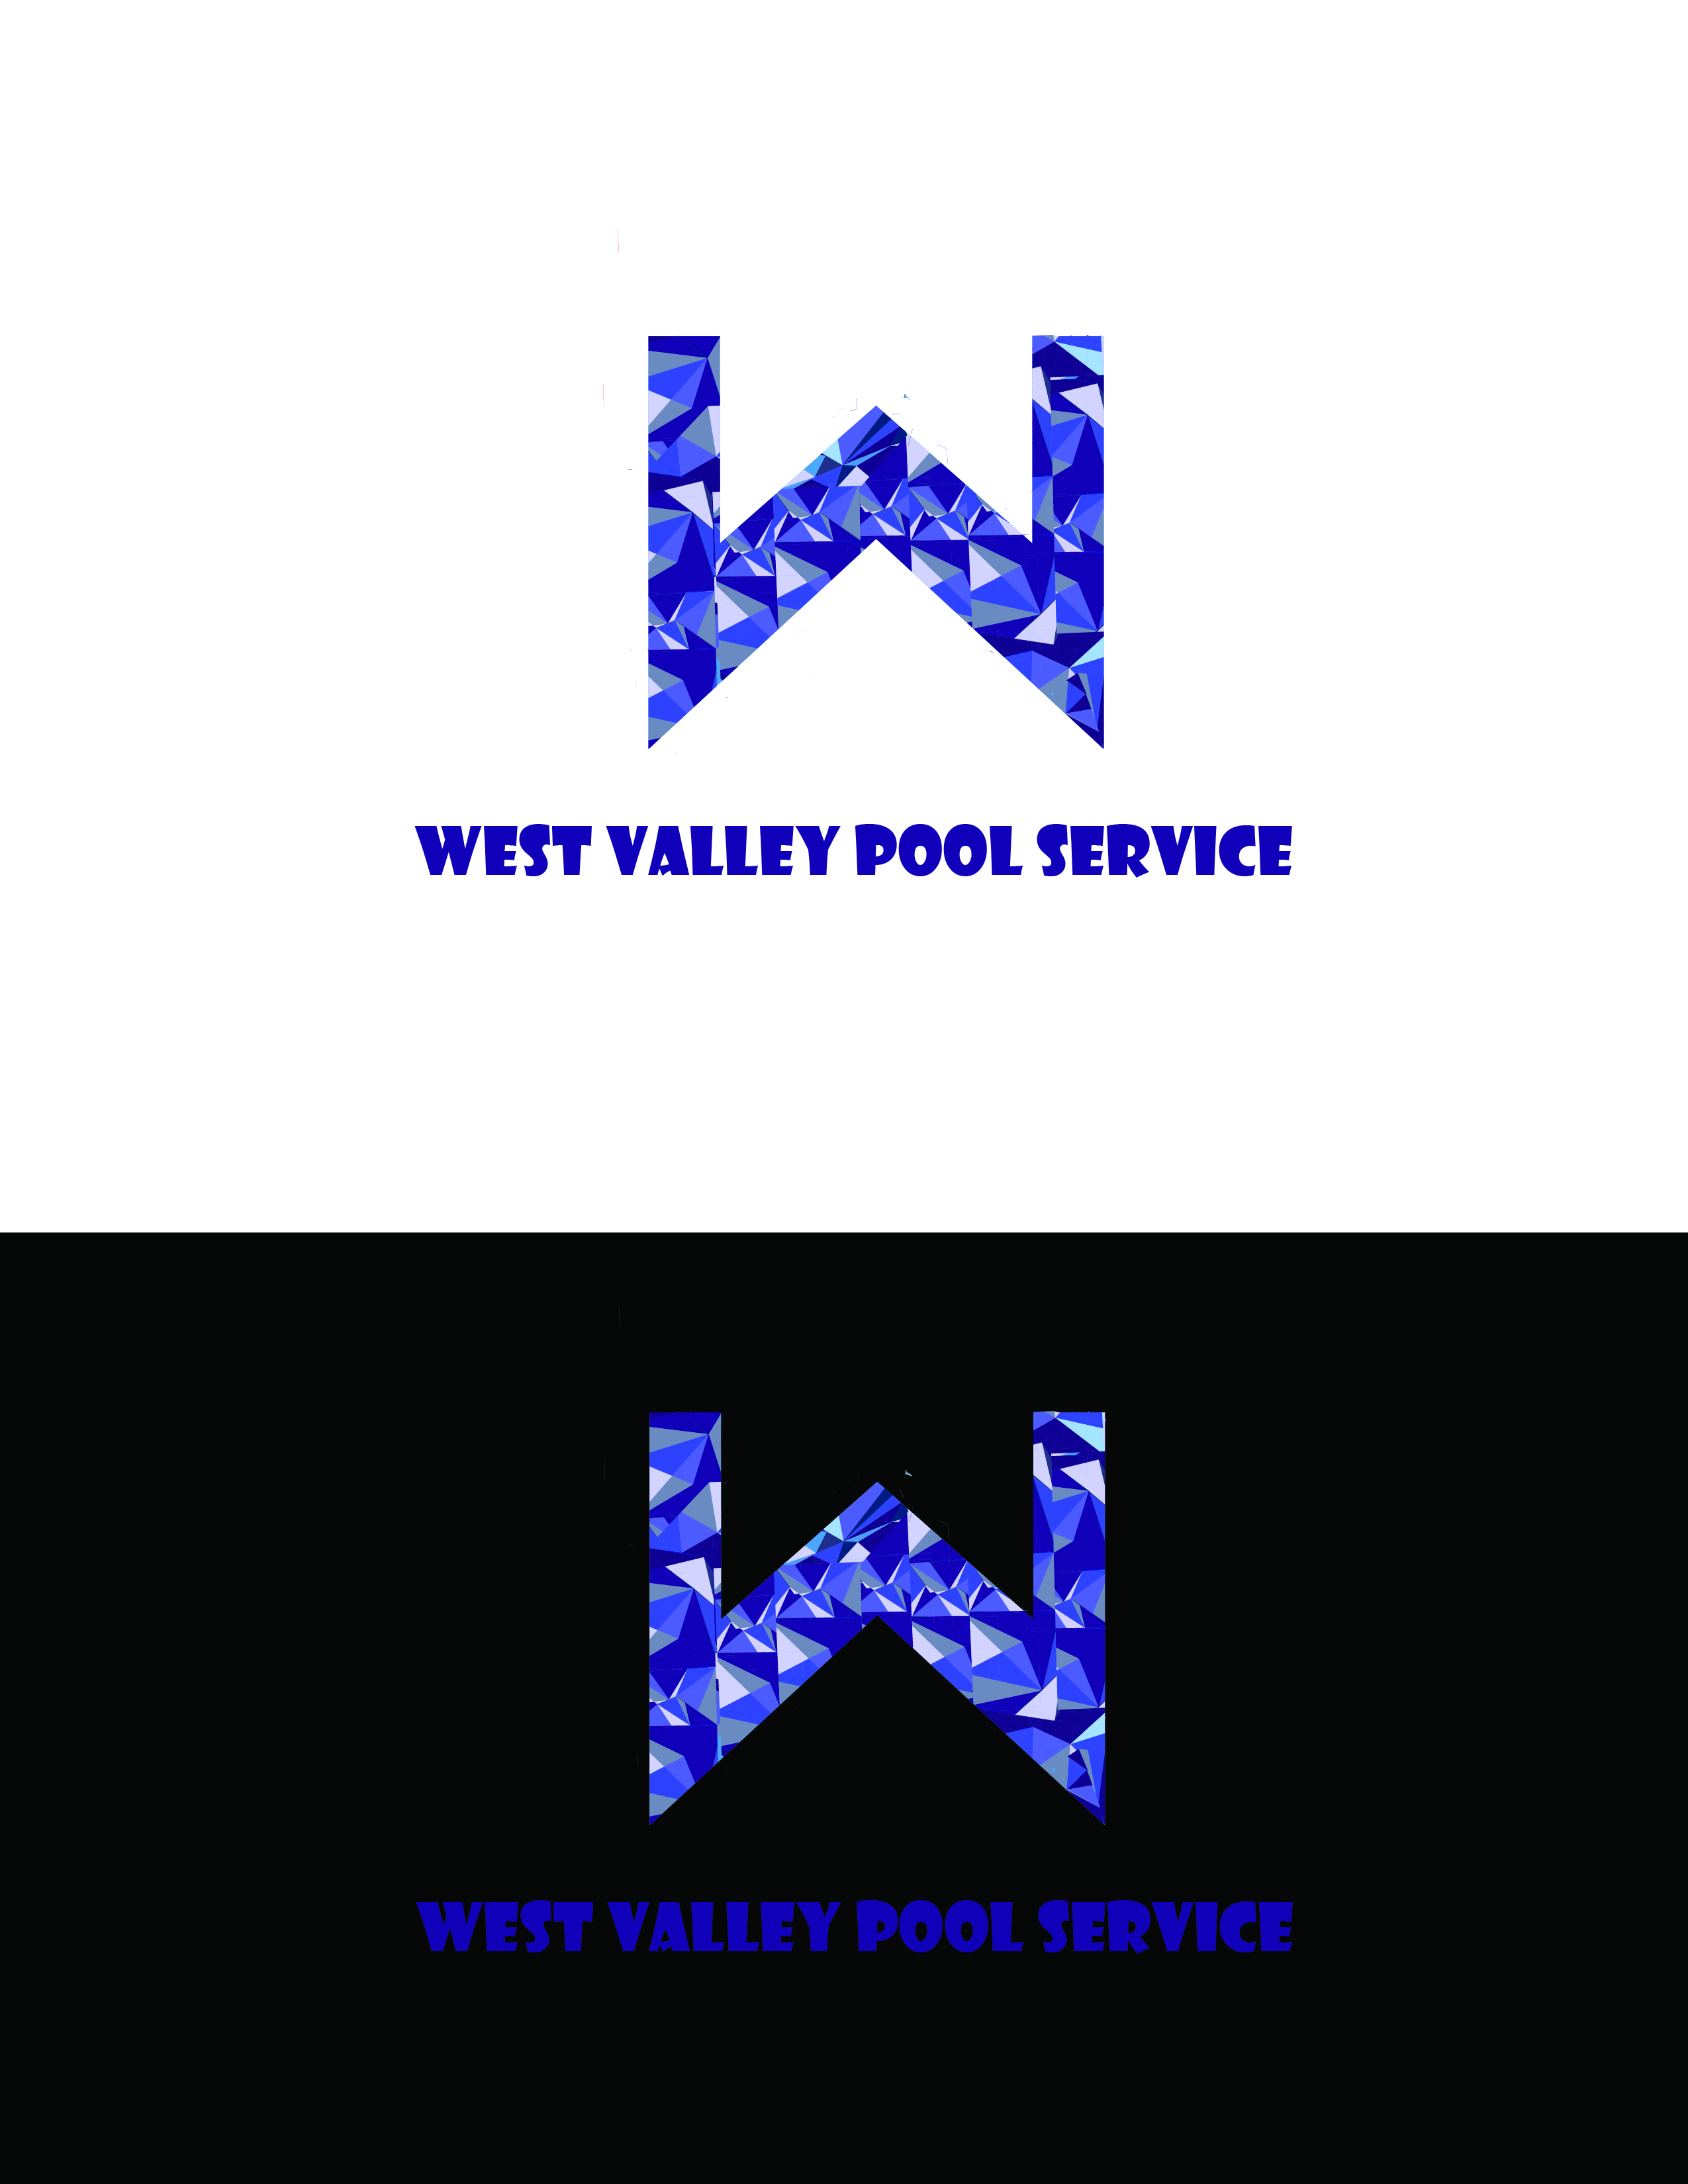 Logo Design by AQIB SHAIKH - Entry No. 16 in the Logo Design Contest Clever Logo Design for West Valley Pool Service.